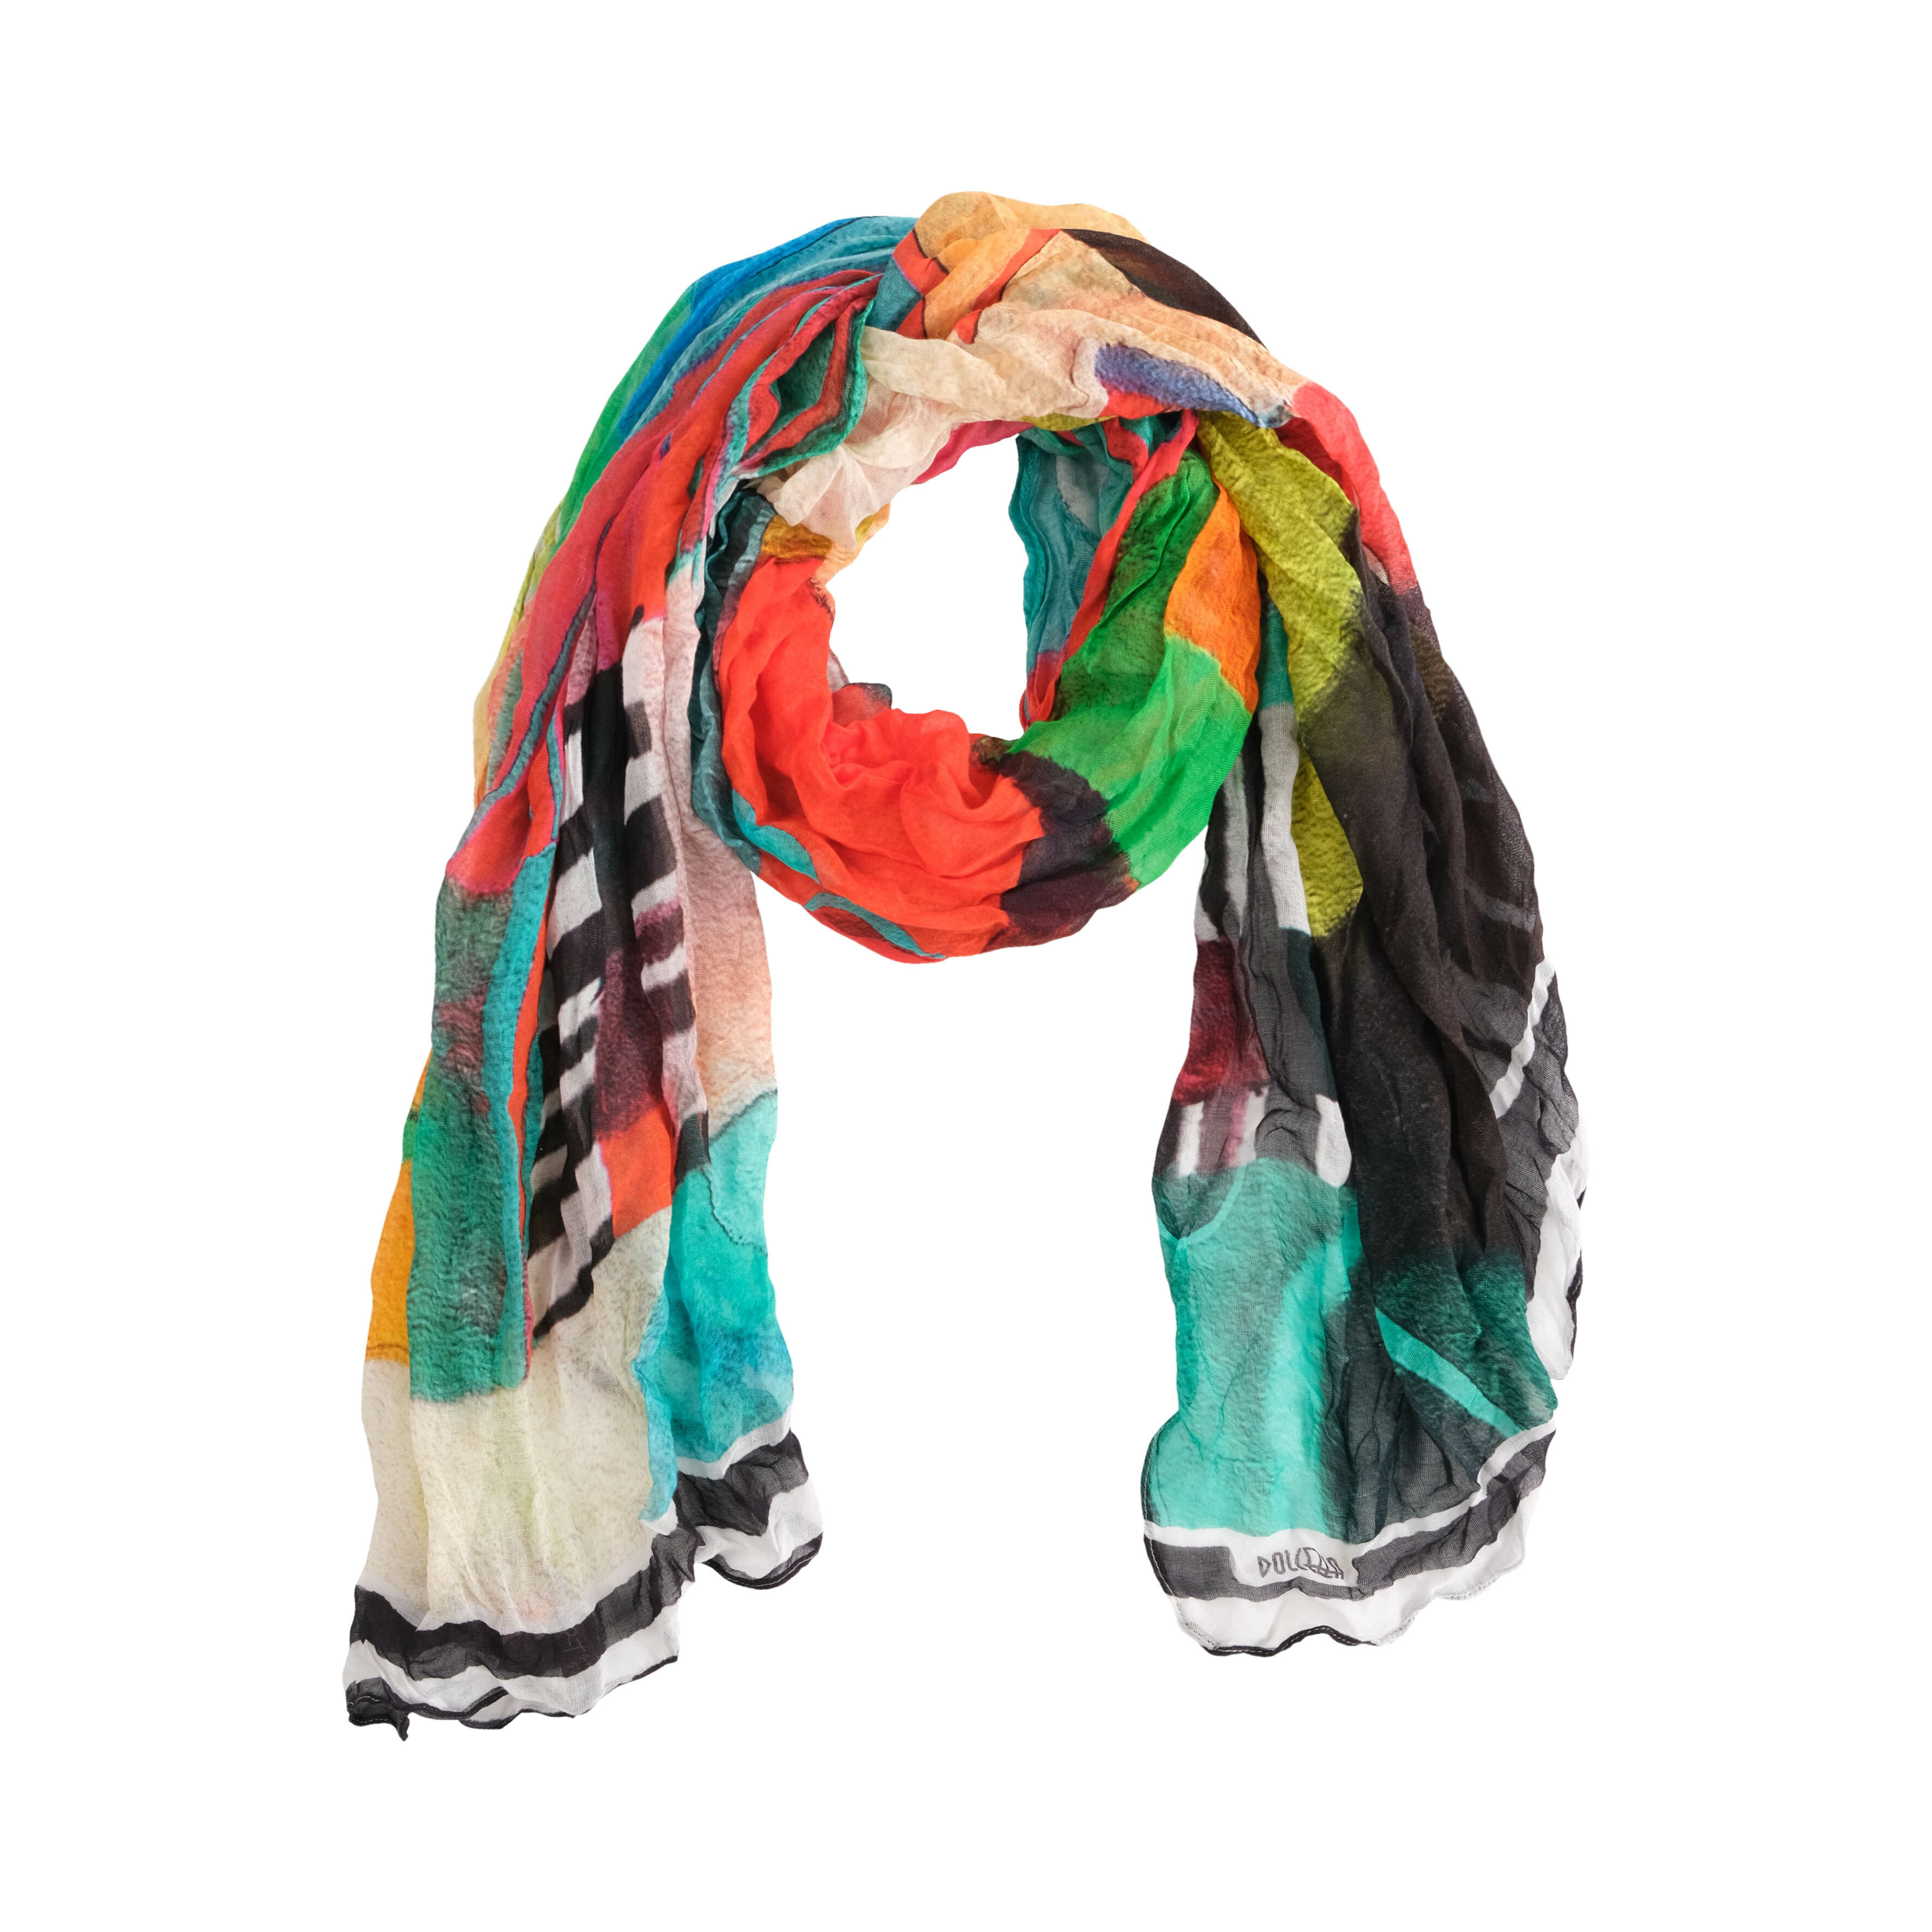 Simply Art Dolcezza: Relaxing In Red Abstract Art Scarf (1 Left!) Dolcezza_SimplyArt_20905